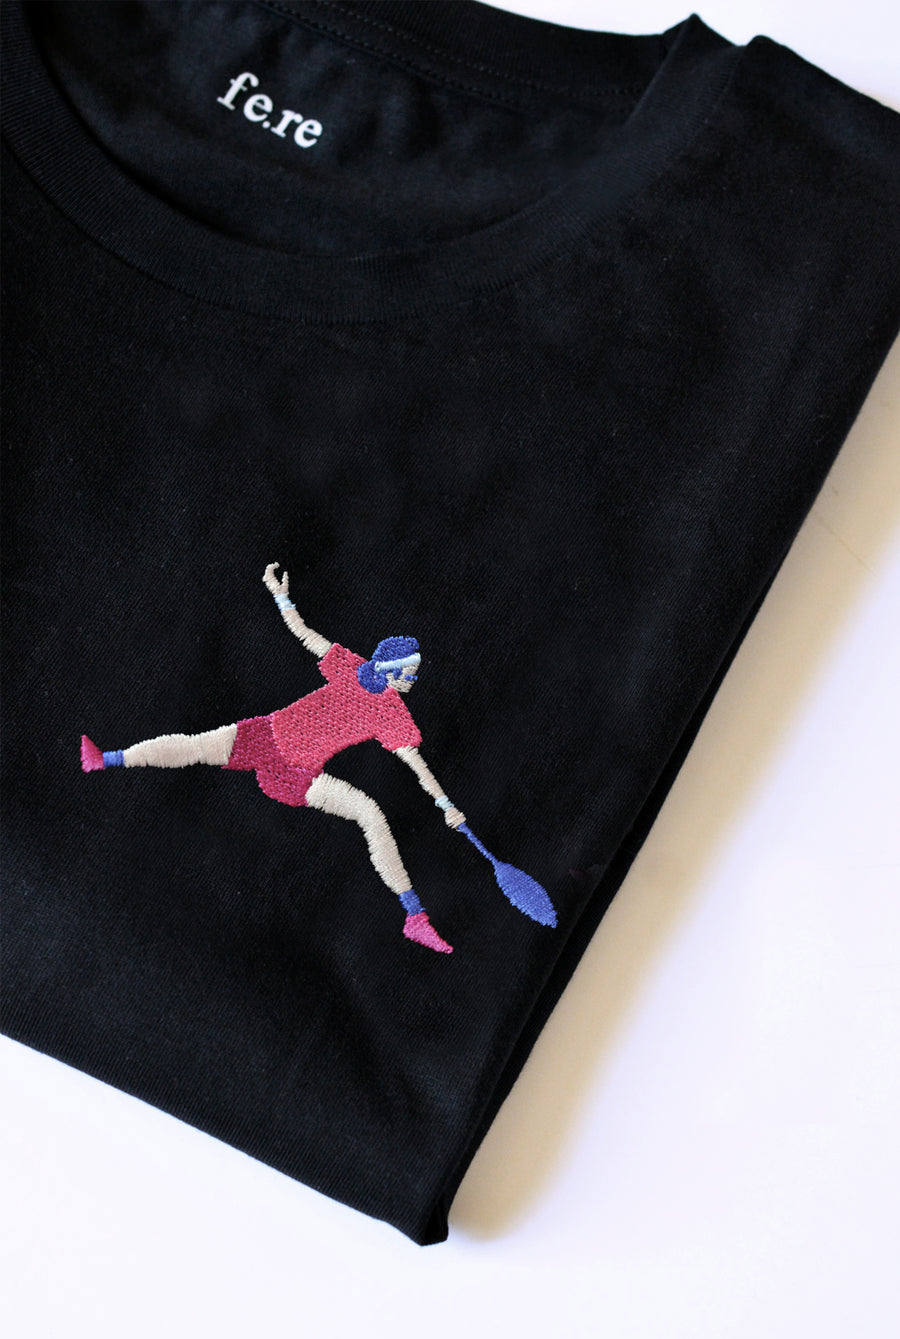 T-shirt broderie - Le tennis, couleurs